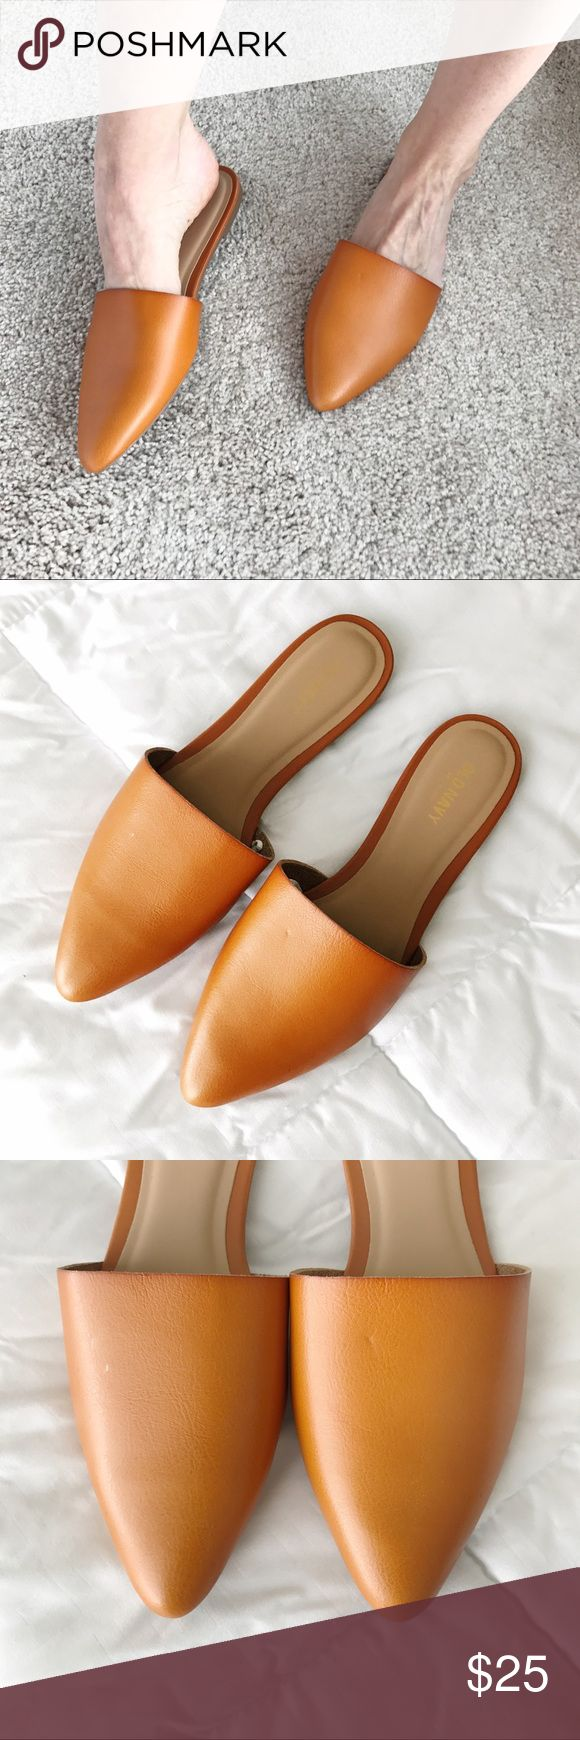 NWT Pointed Flat Mule Slipper 7 Sold out! Stunning slip on mules from Old Navy!! These are faux leather, but look like the real thing. The color is a rich English saddle, and looks very similar to Madewell's tan leathers. Will fit a 7-7.5. I constantly get compliments when I wear my mules. These are so comfortable, and look great with everything! I loved these so much I got 3 pairs. 🙈 A little extreme, so that's why I'm selling this pair! 🚫Trades 🚫PayPal Old Navy Shoes